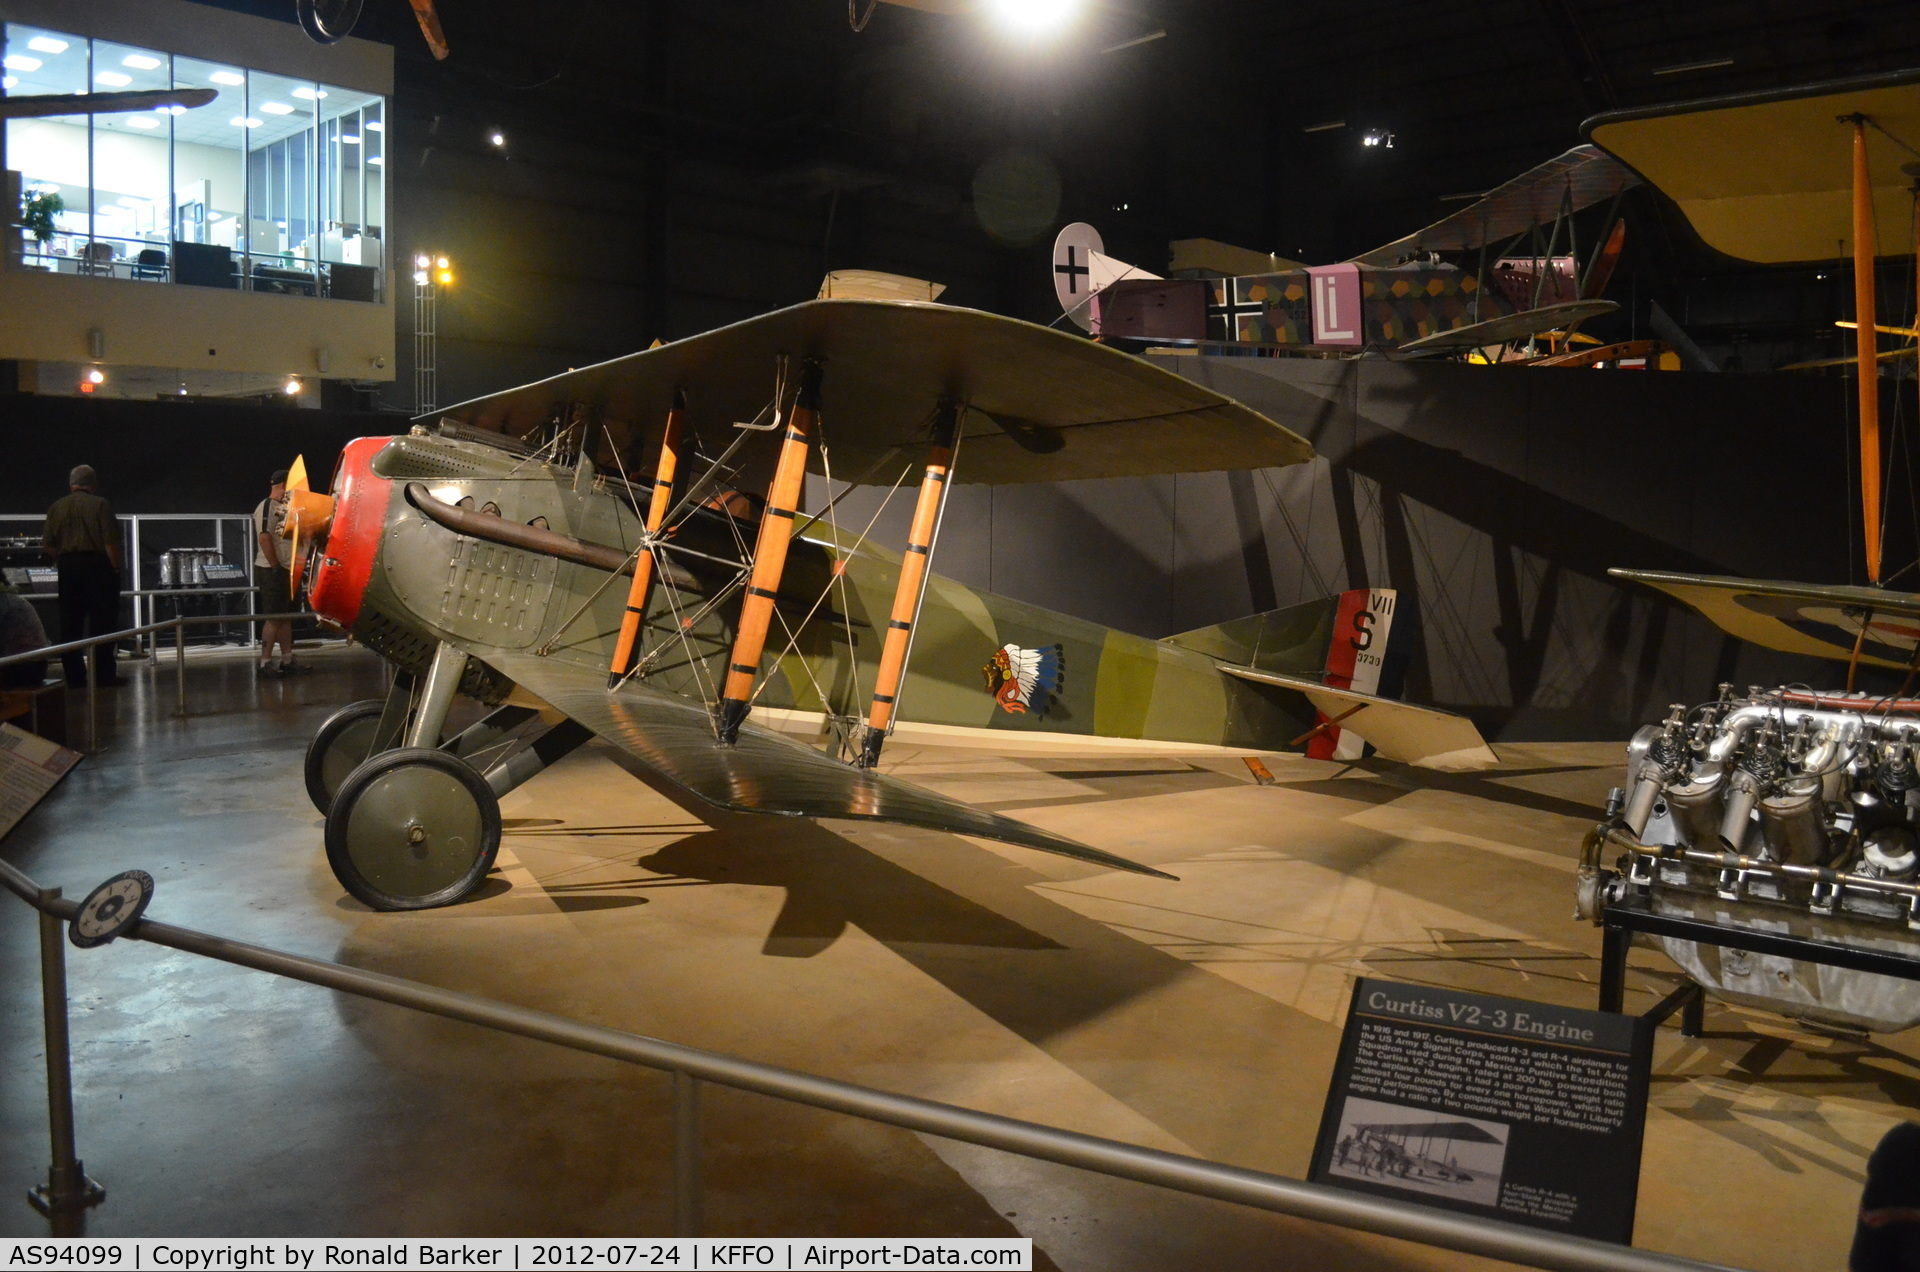 AS94099, SPAD S-VII C/N Not found AS94099, SPAD VII  3730